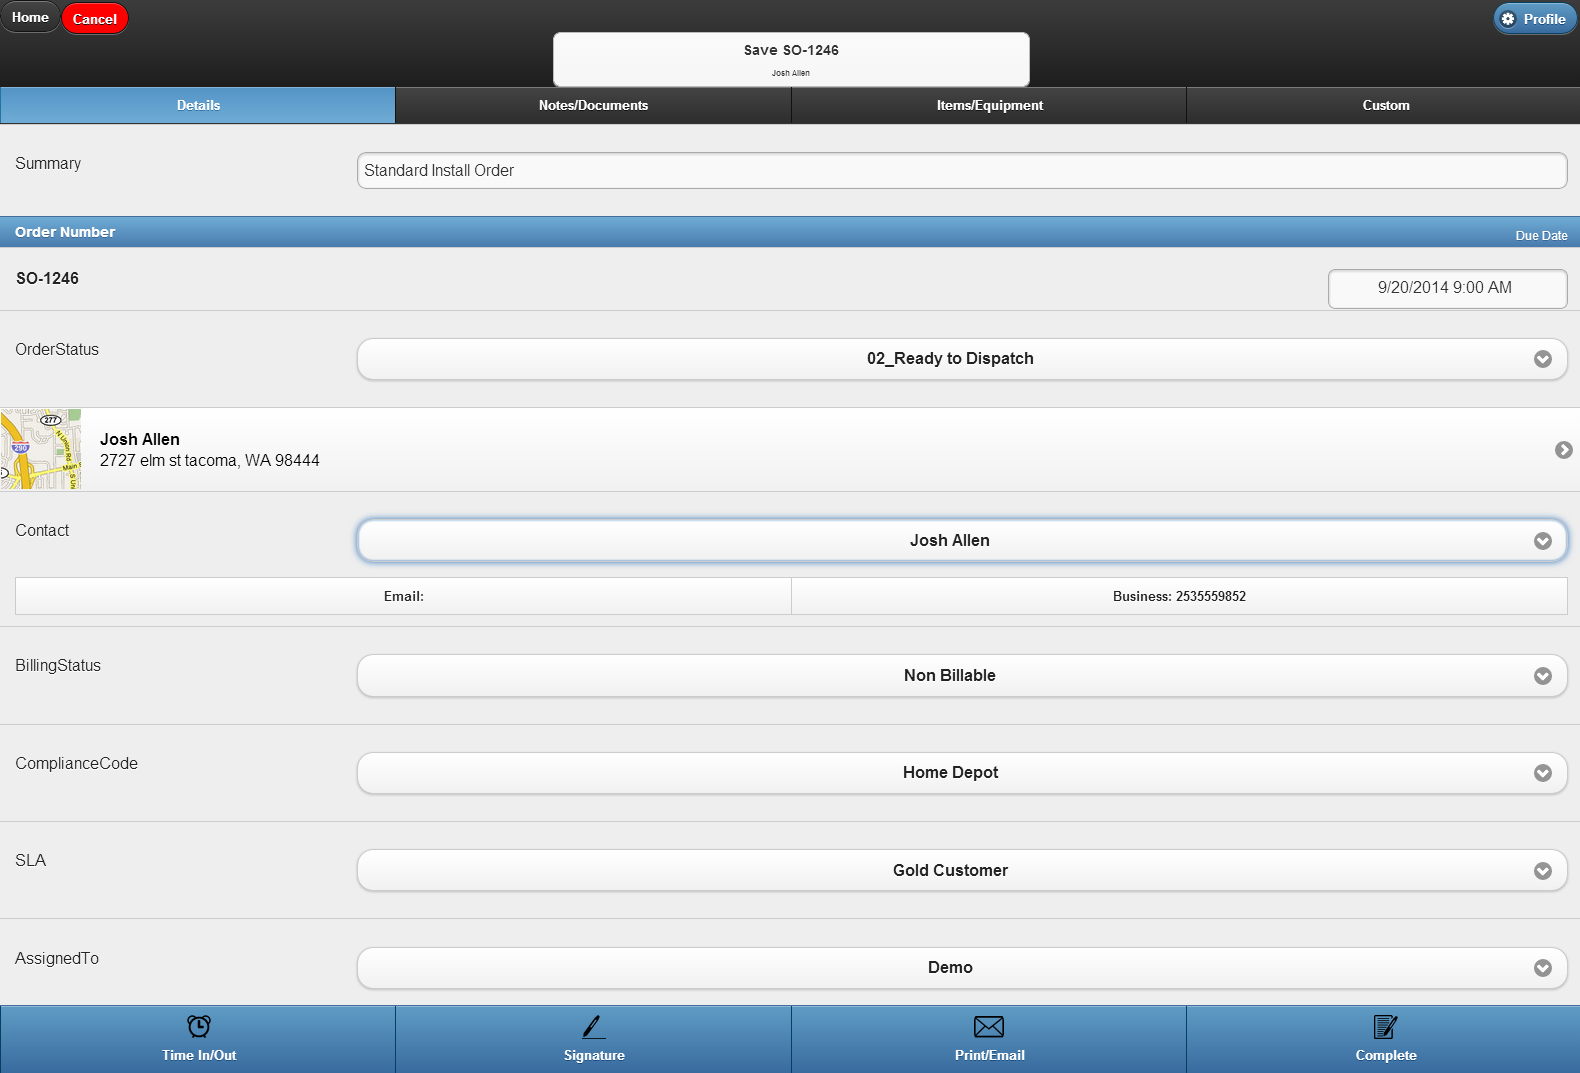 Work order management app lets techs work from any mobile device in the field and syncs all info back to the office